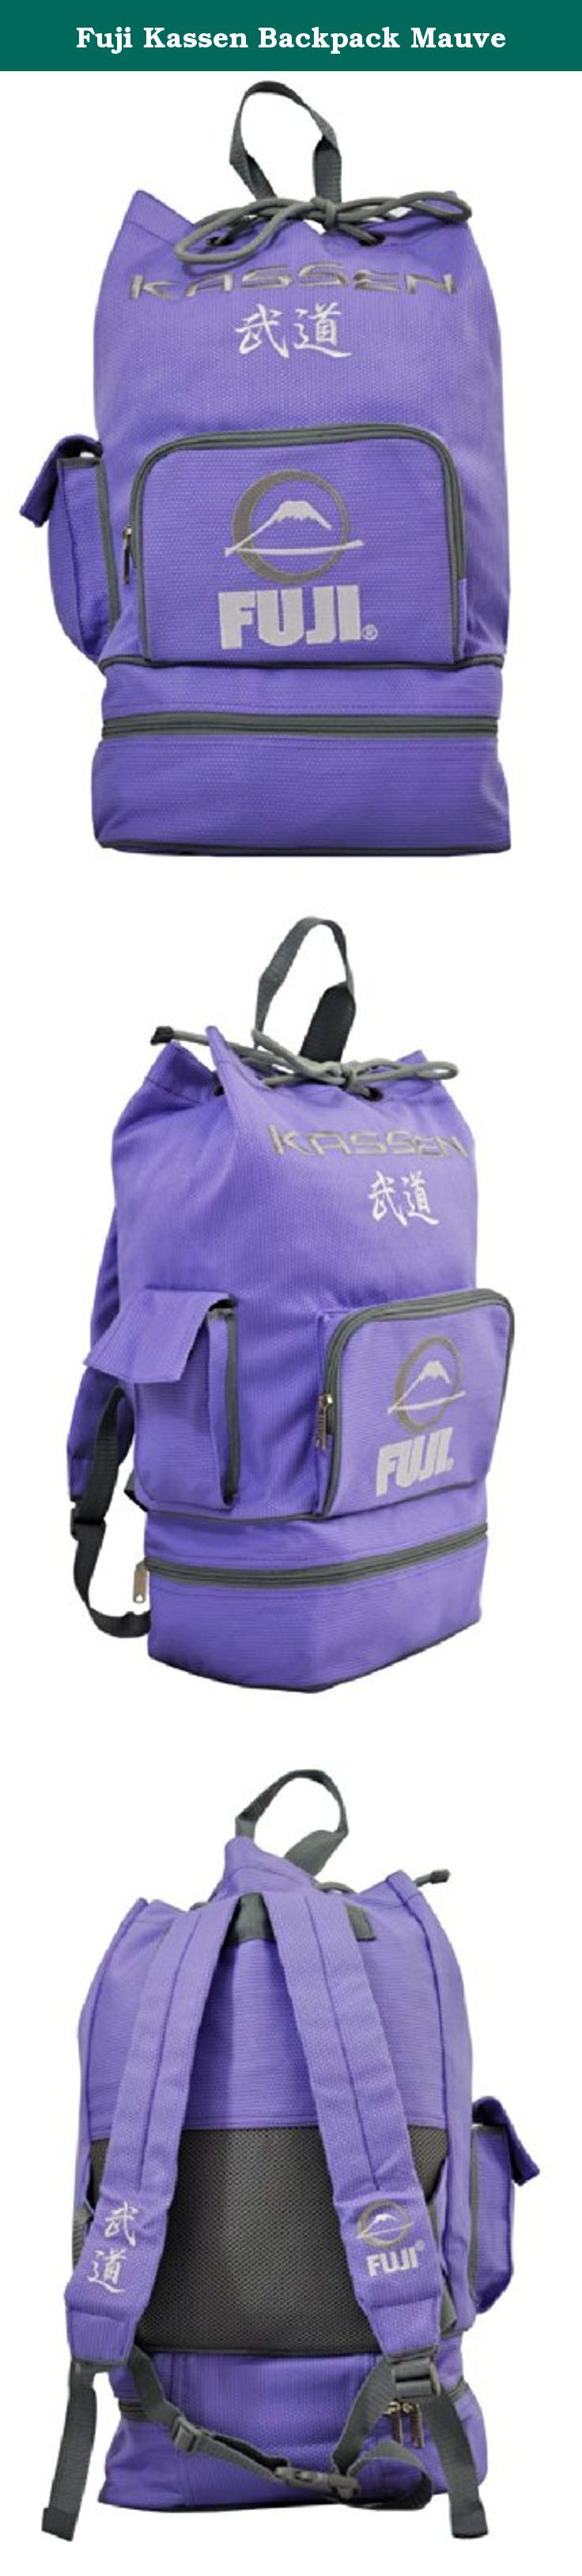 Fuji Kassen Backpack Mauve. The perfect bag to drop your gear in and go. Comes in smaller sizes for daily travel to the club and also great for kids.